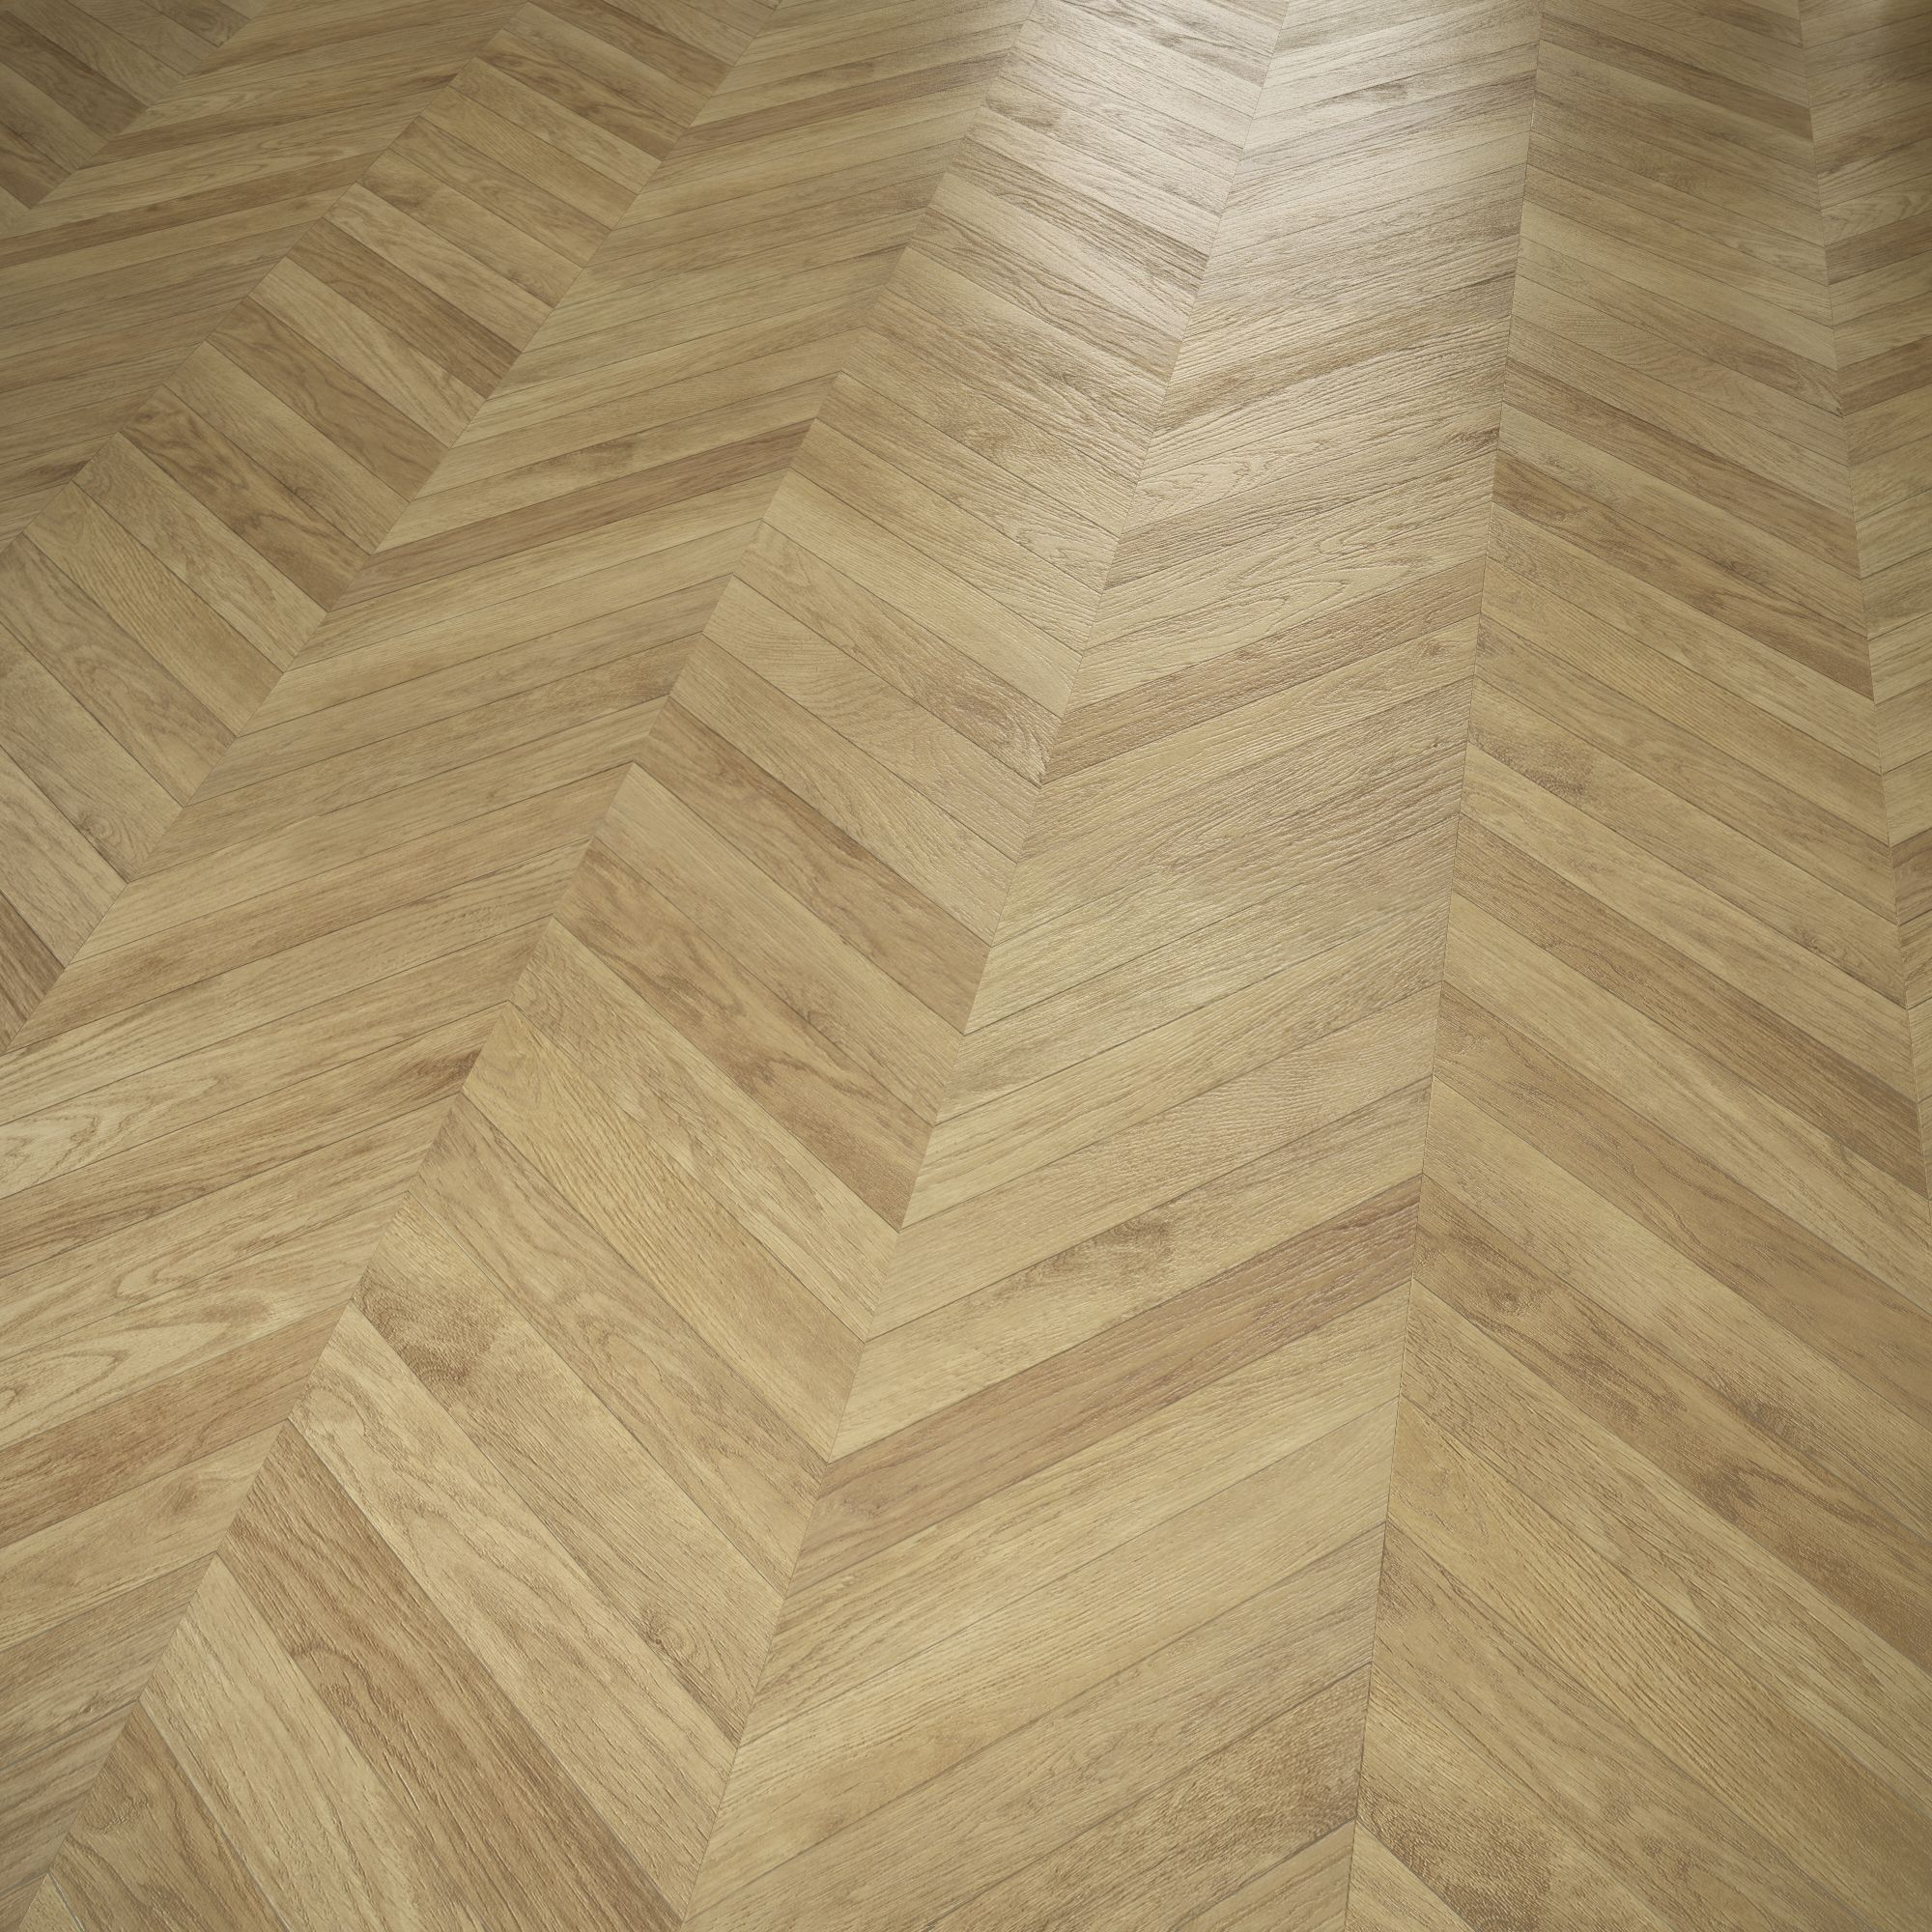 Alessano Natural Herringbone Oak Effect Laminate Flooring